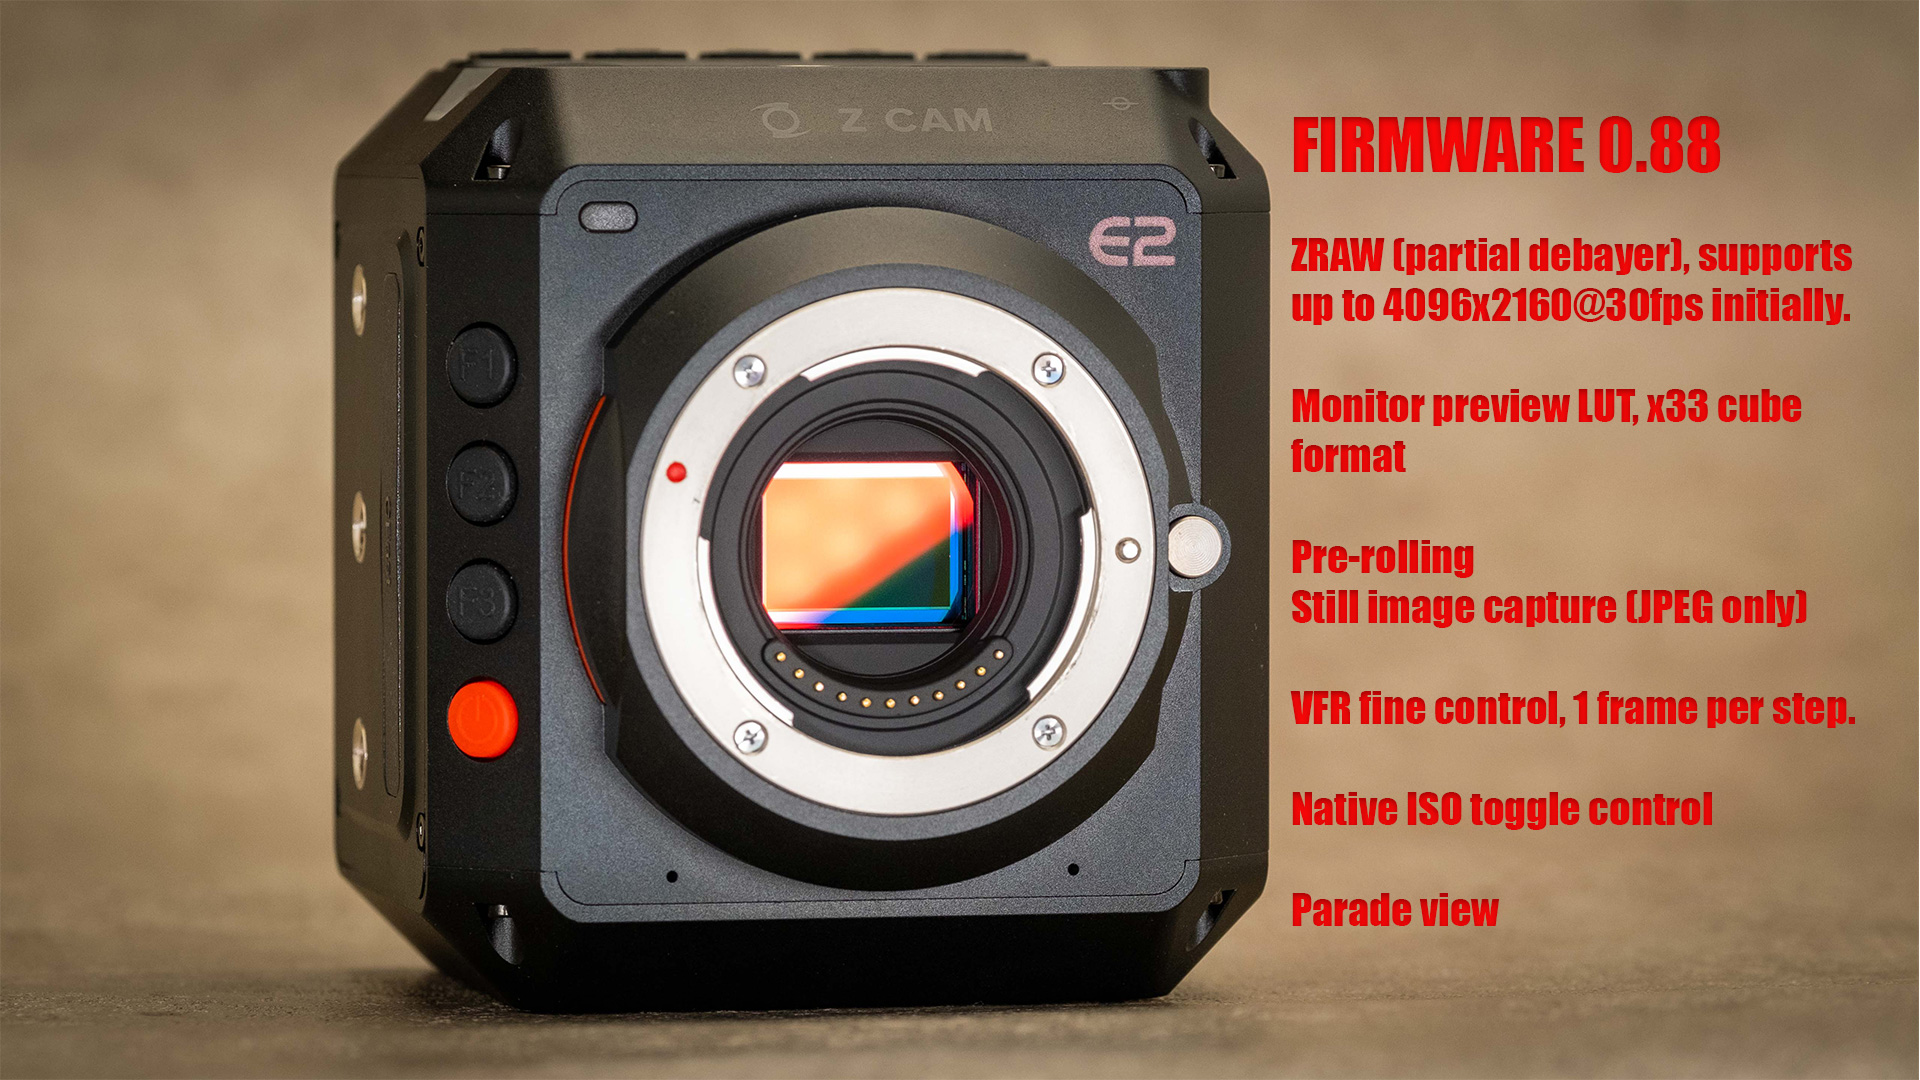 Z Cam adds ZRAW with E2 firmware update